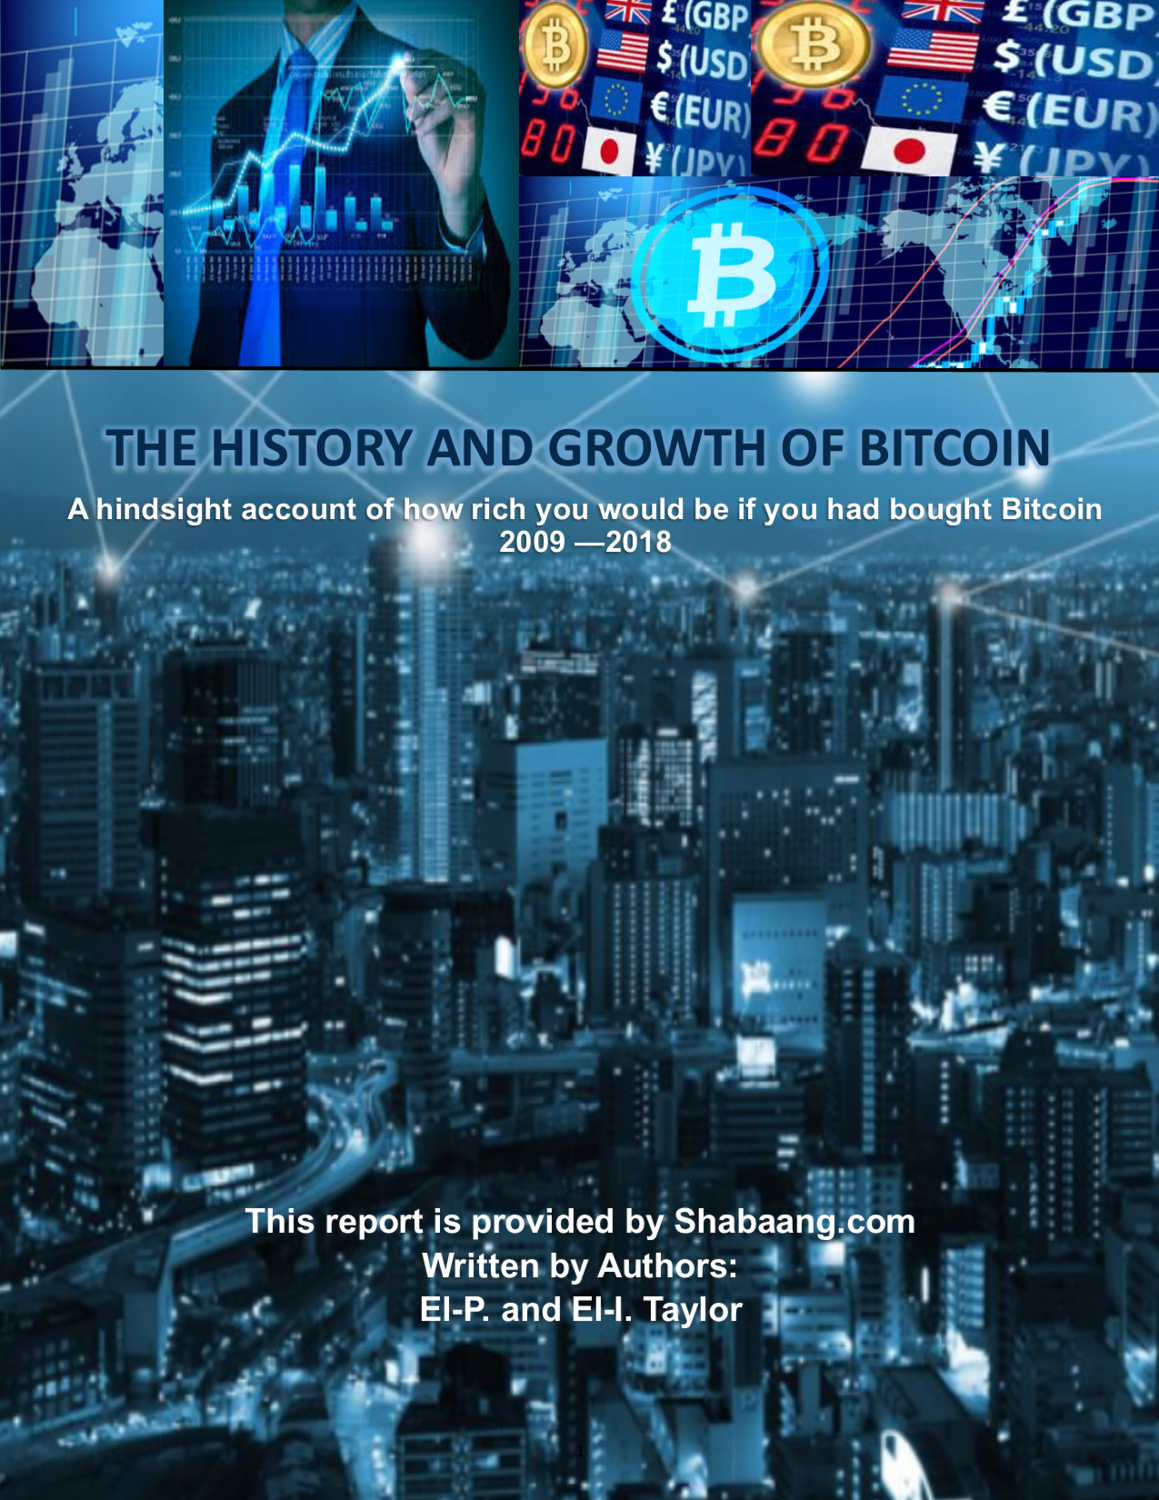 e-Book (PDF) THE HISTORY AND GROWTH OF BITCOIN REPORT